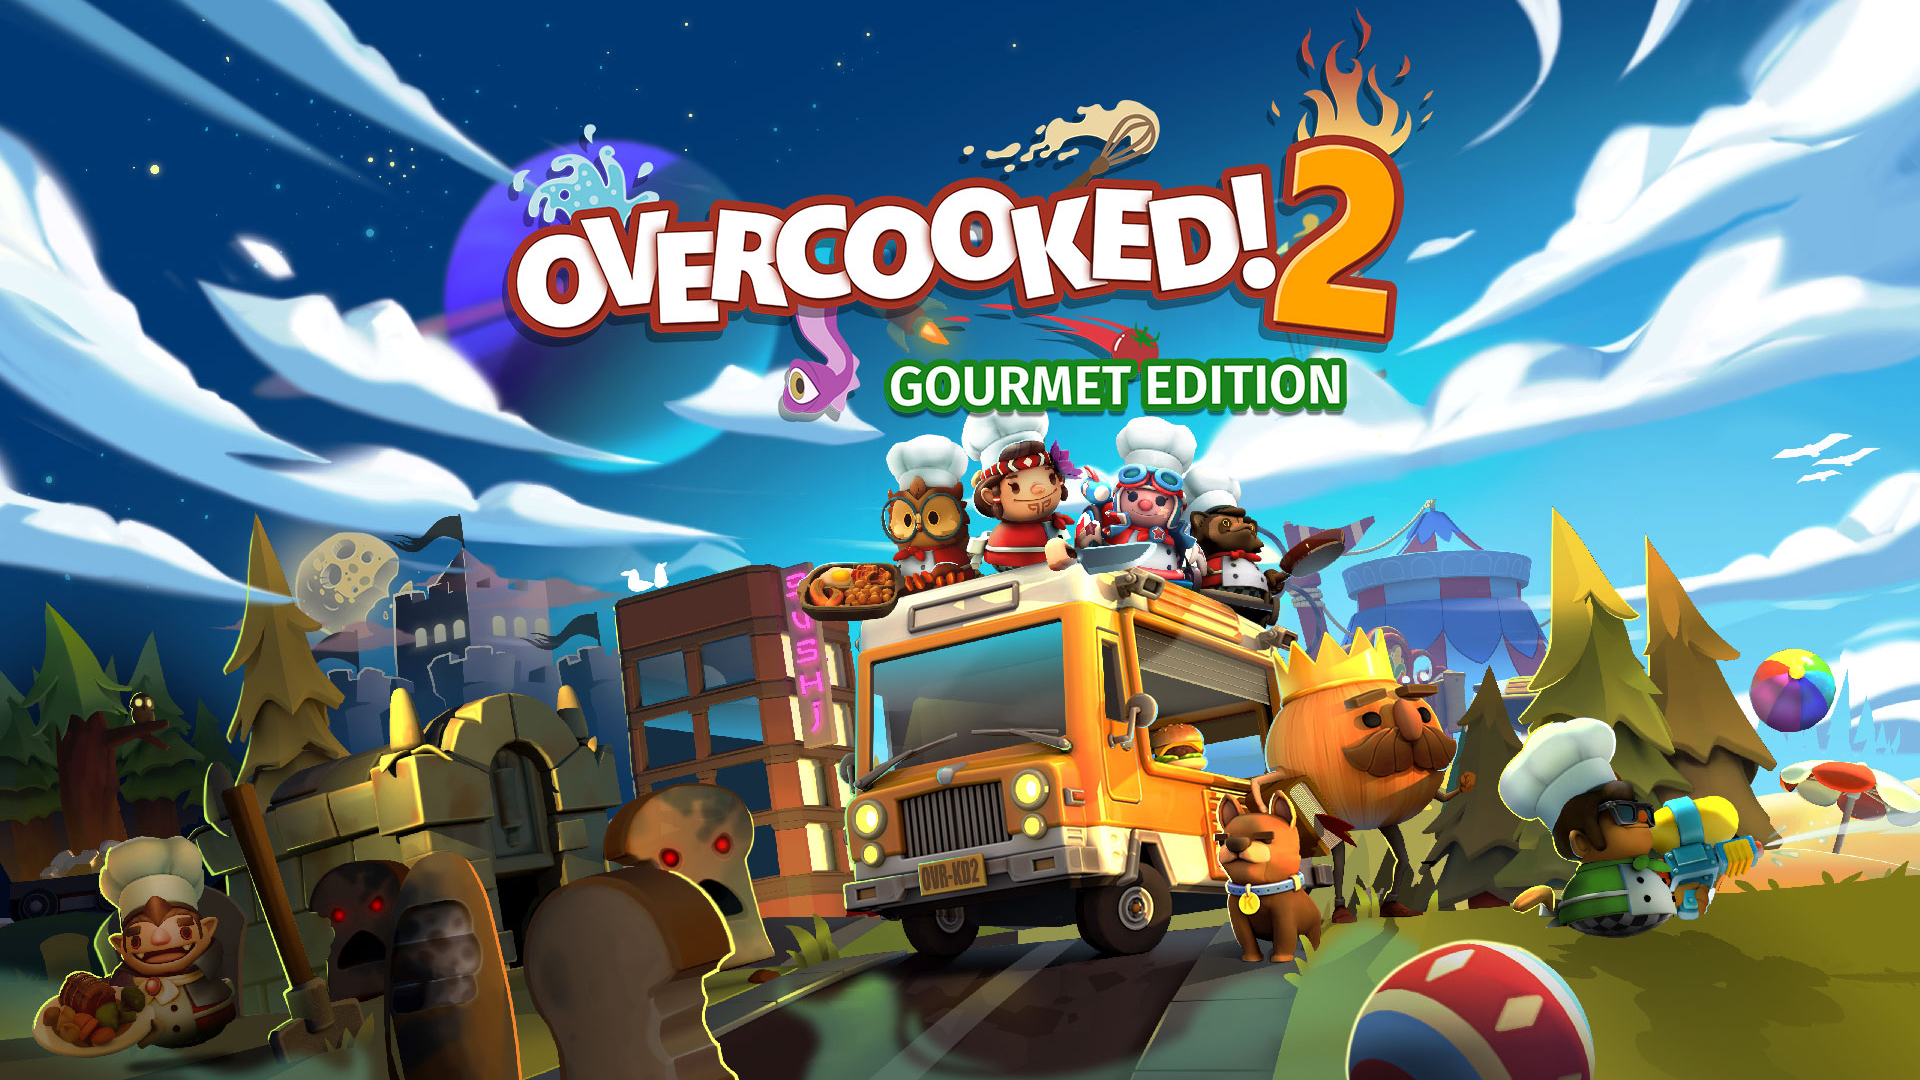 Introducing – Overcooked! 2: Gourmet Edition!